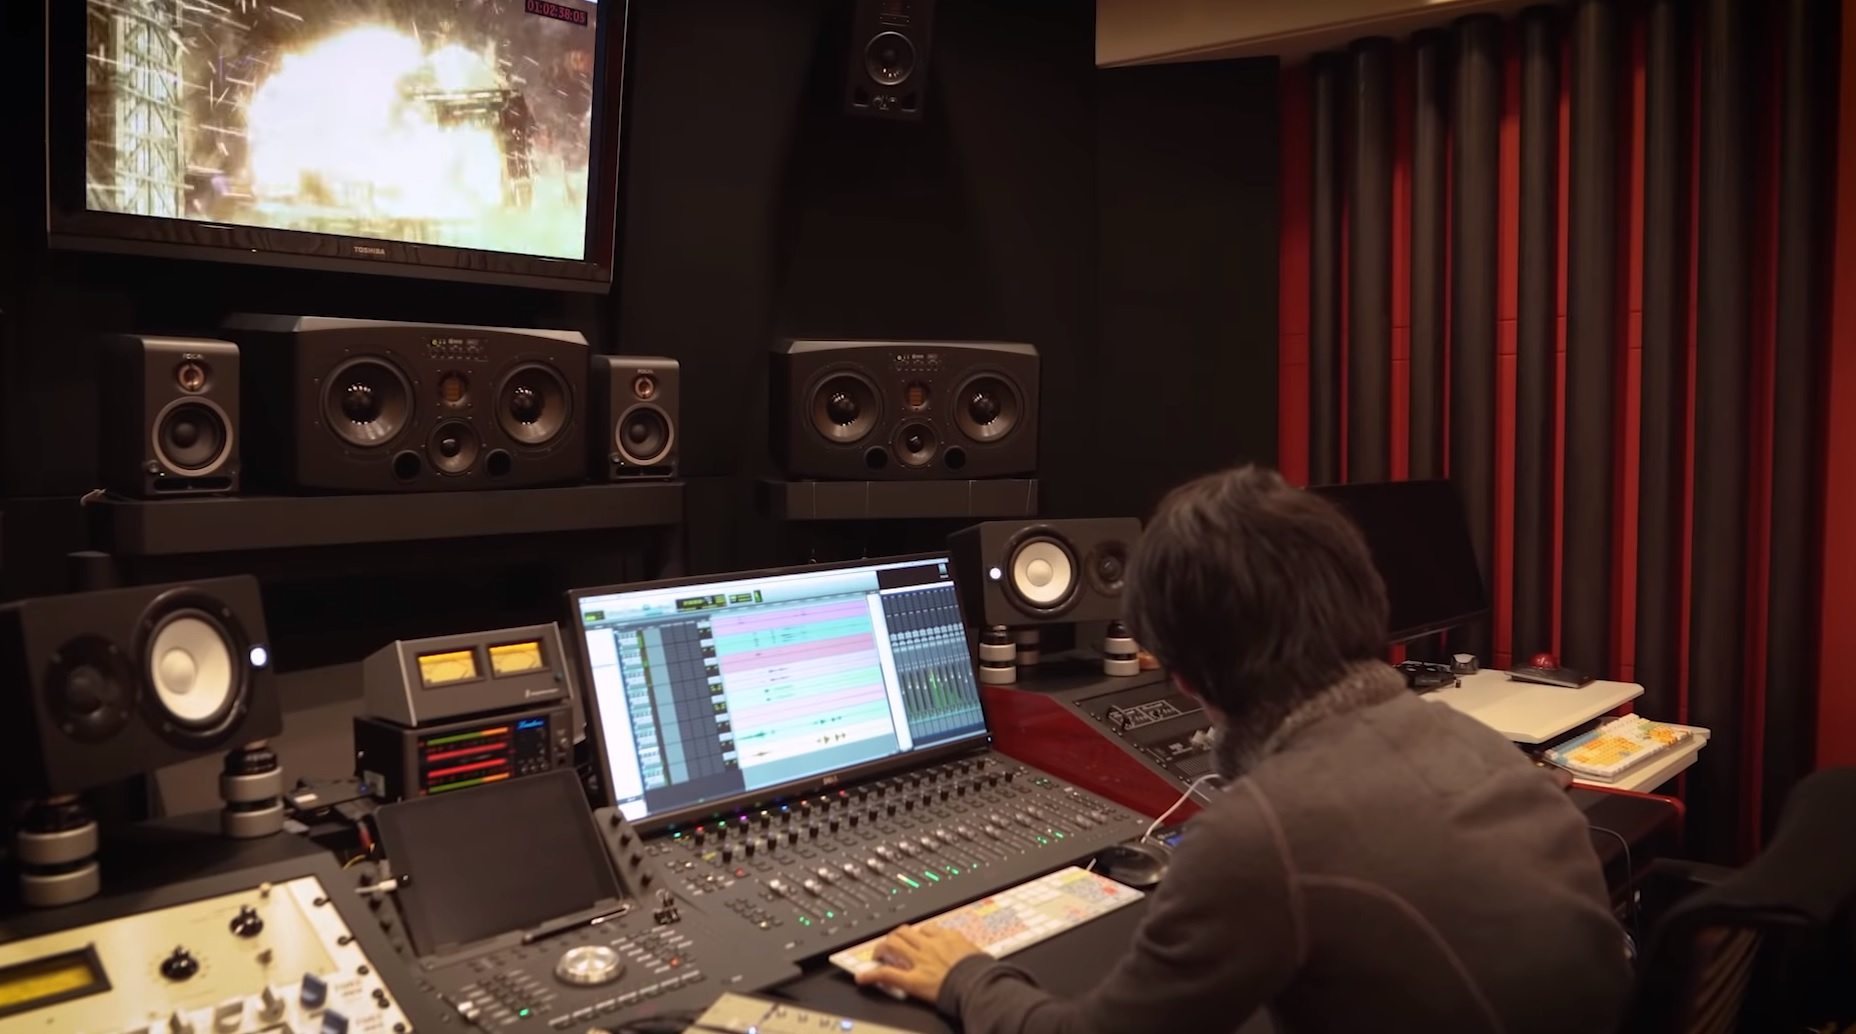 Final Fantasy XIV's official documentary series continues, as Square Enix spotlights music and aesthetics screenshot